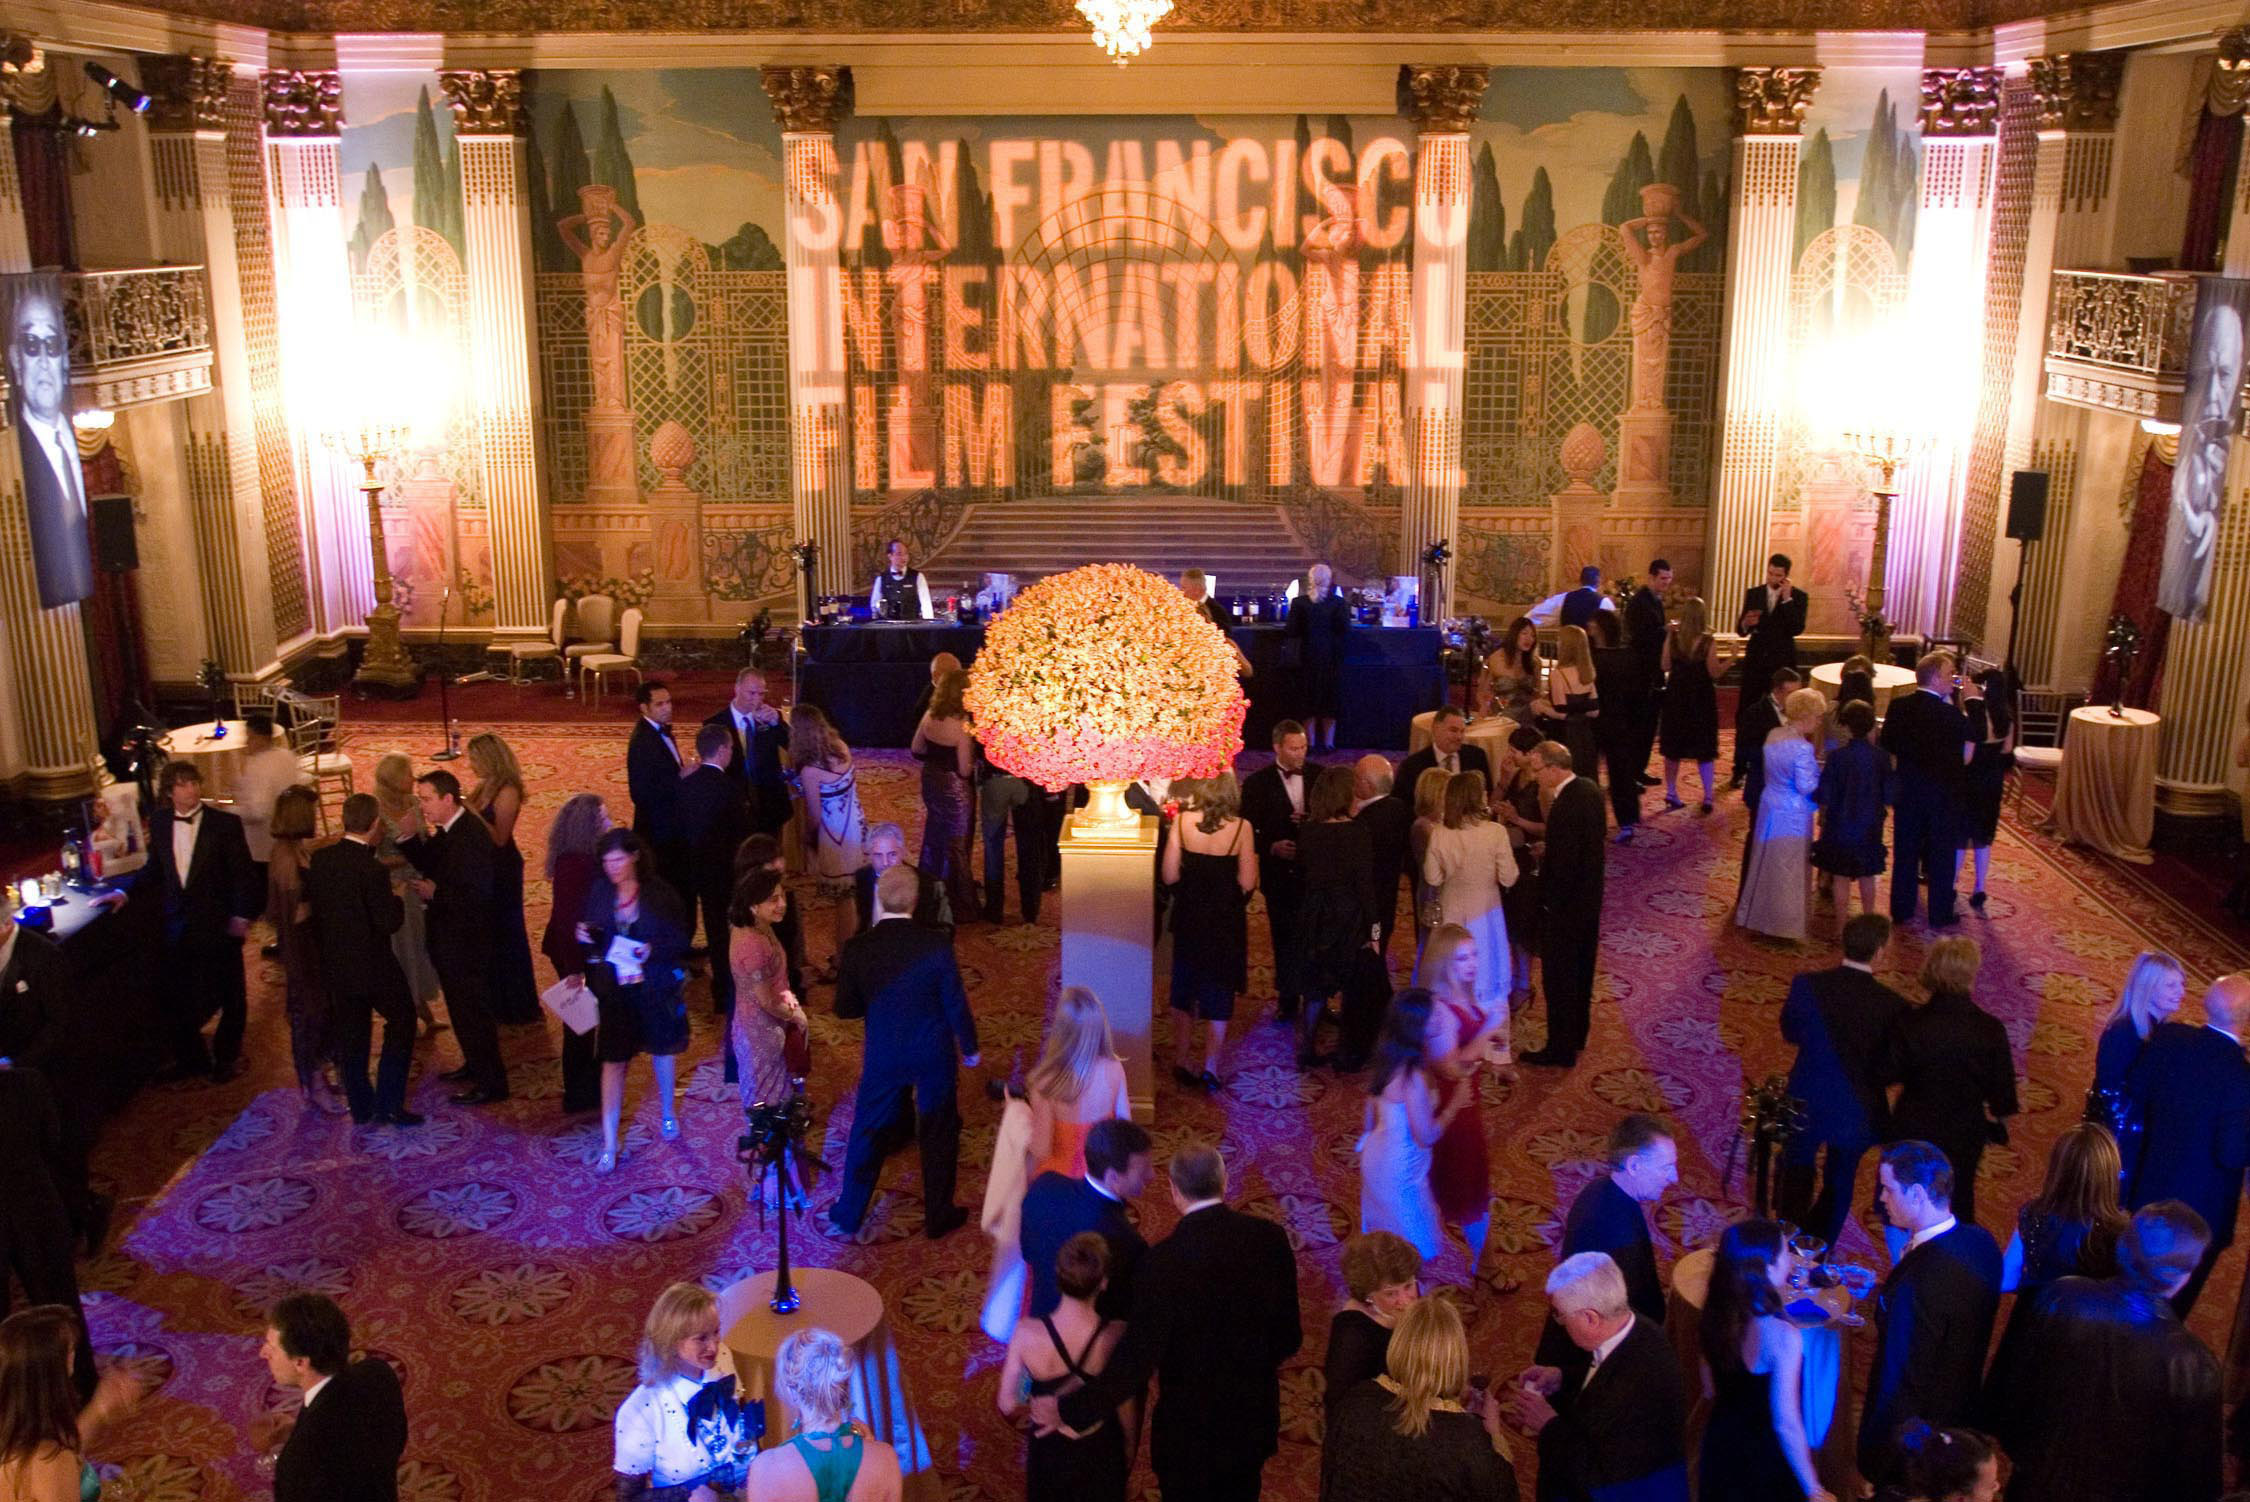 Rachel Rosen Gives a Behind the Scenes Look at San Francisco Film Festival